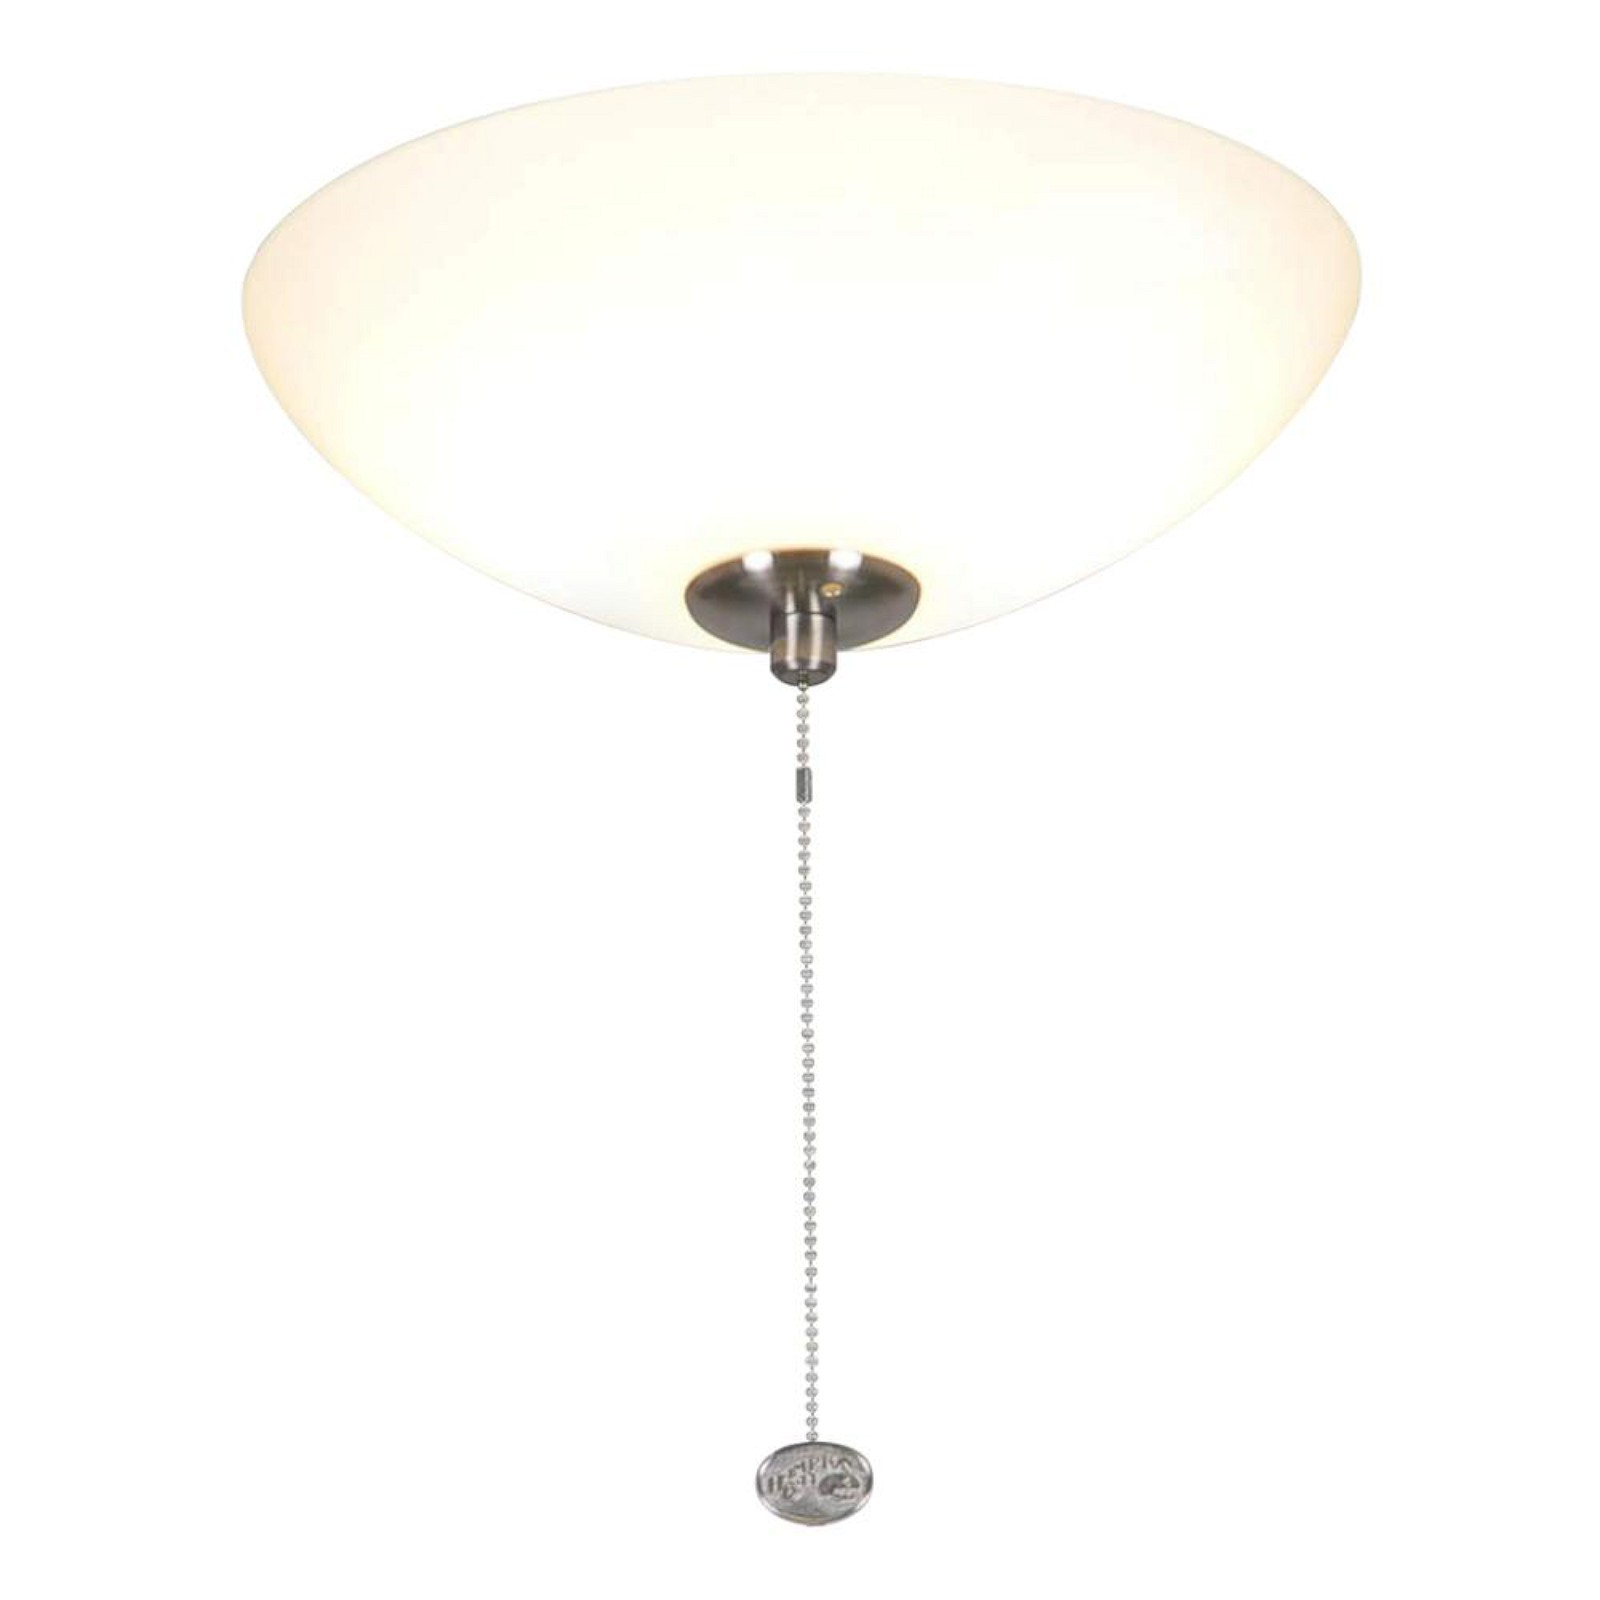 Home Decorators Collection Universal 12 In Led Ceiling Fan Light Kit Ac421lkled 792145370055 Ebay